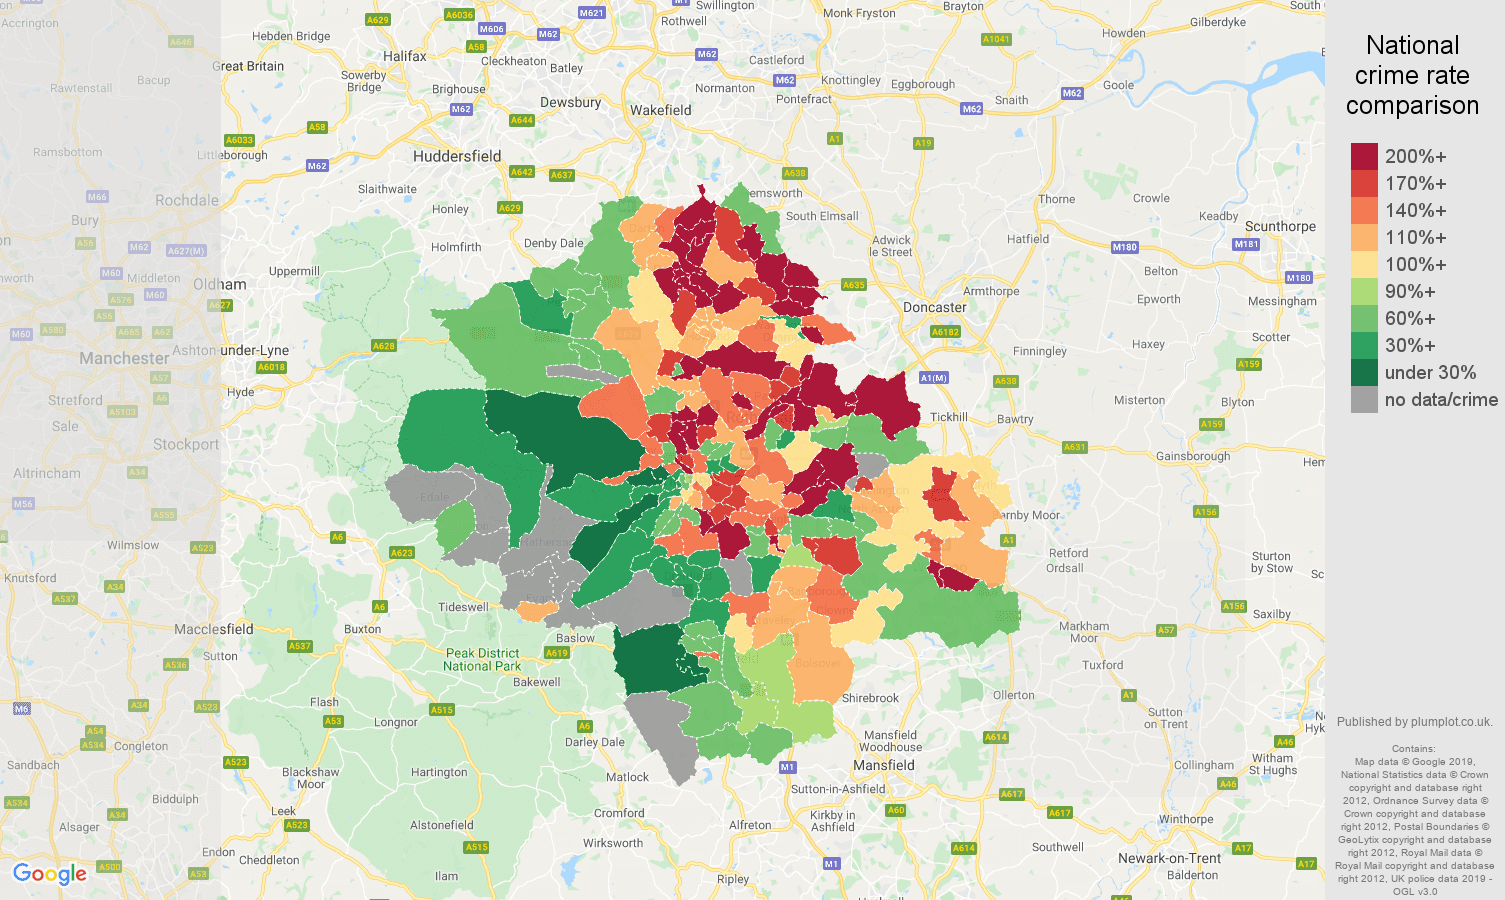 Sheffield other crime rate comparison map